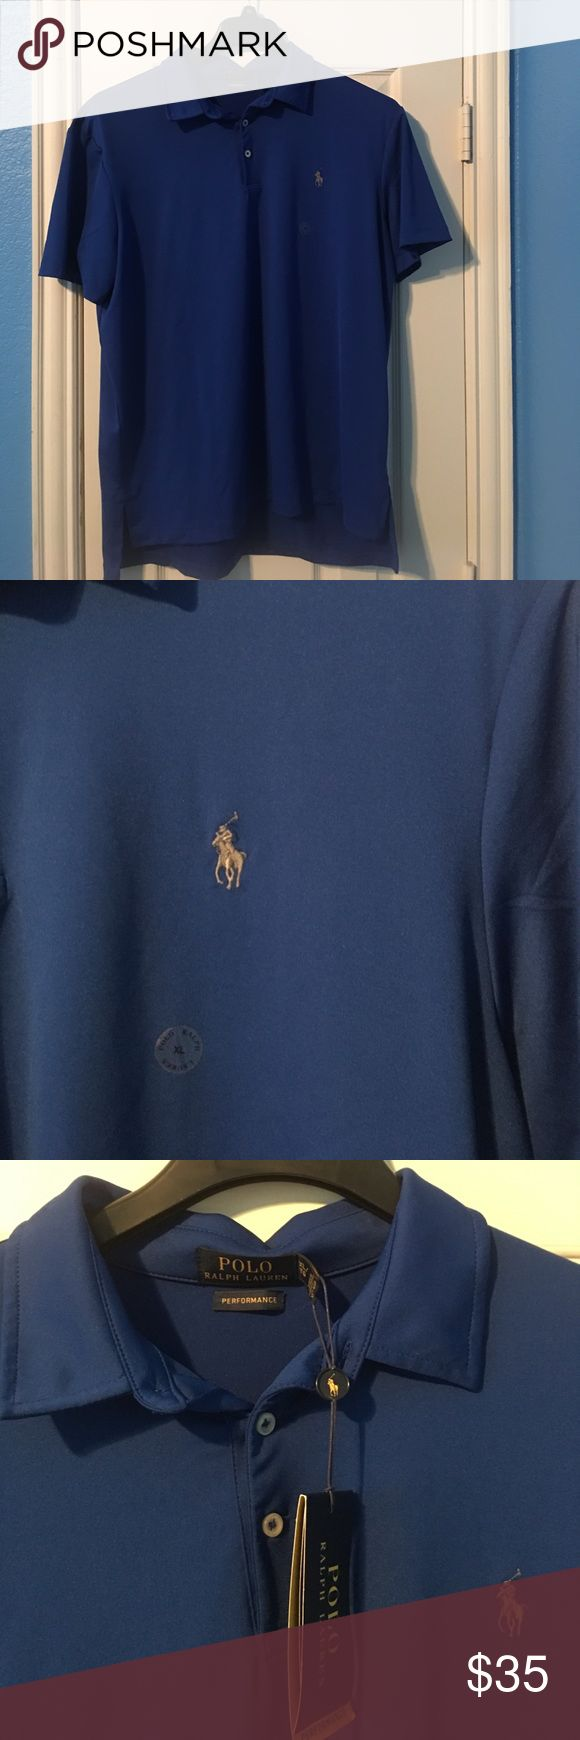 NWT Dark Blue Performance Pony Polo BRAND NEW WITH TAGS! Selling this XL Performance line Polo. Super thin Moisture wicking, breathable fabric perfect for a hot day on the golf course. Contains 92% polyester and 8% elastase for a little extra stretch. Shoot me an offer! Polo by Ralph Lauren Shirts Polos